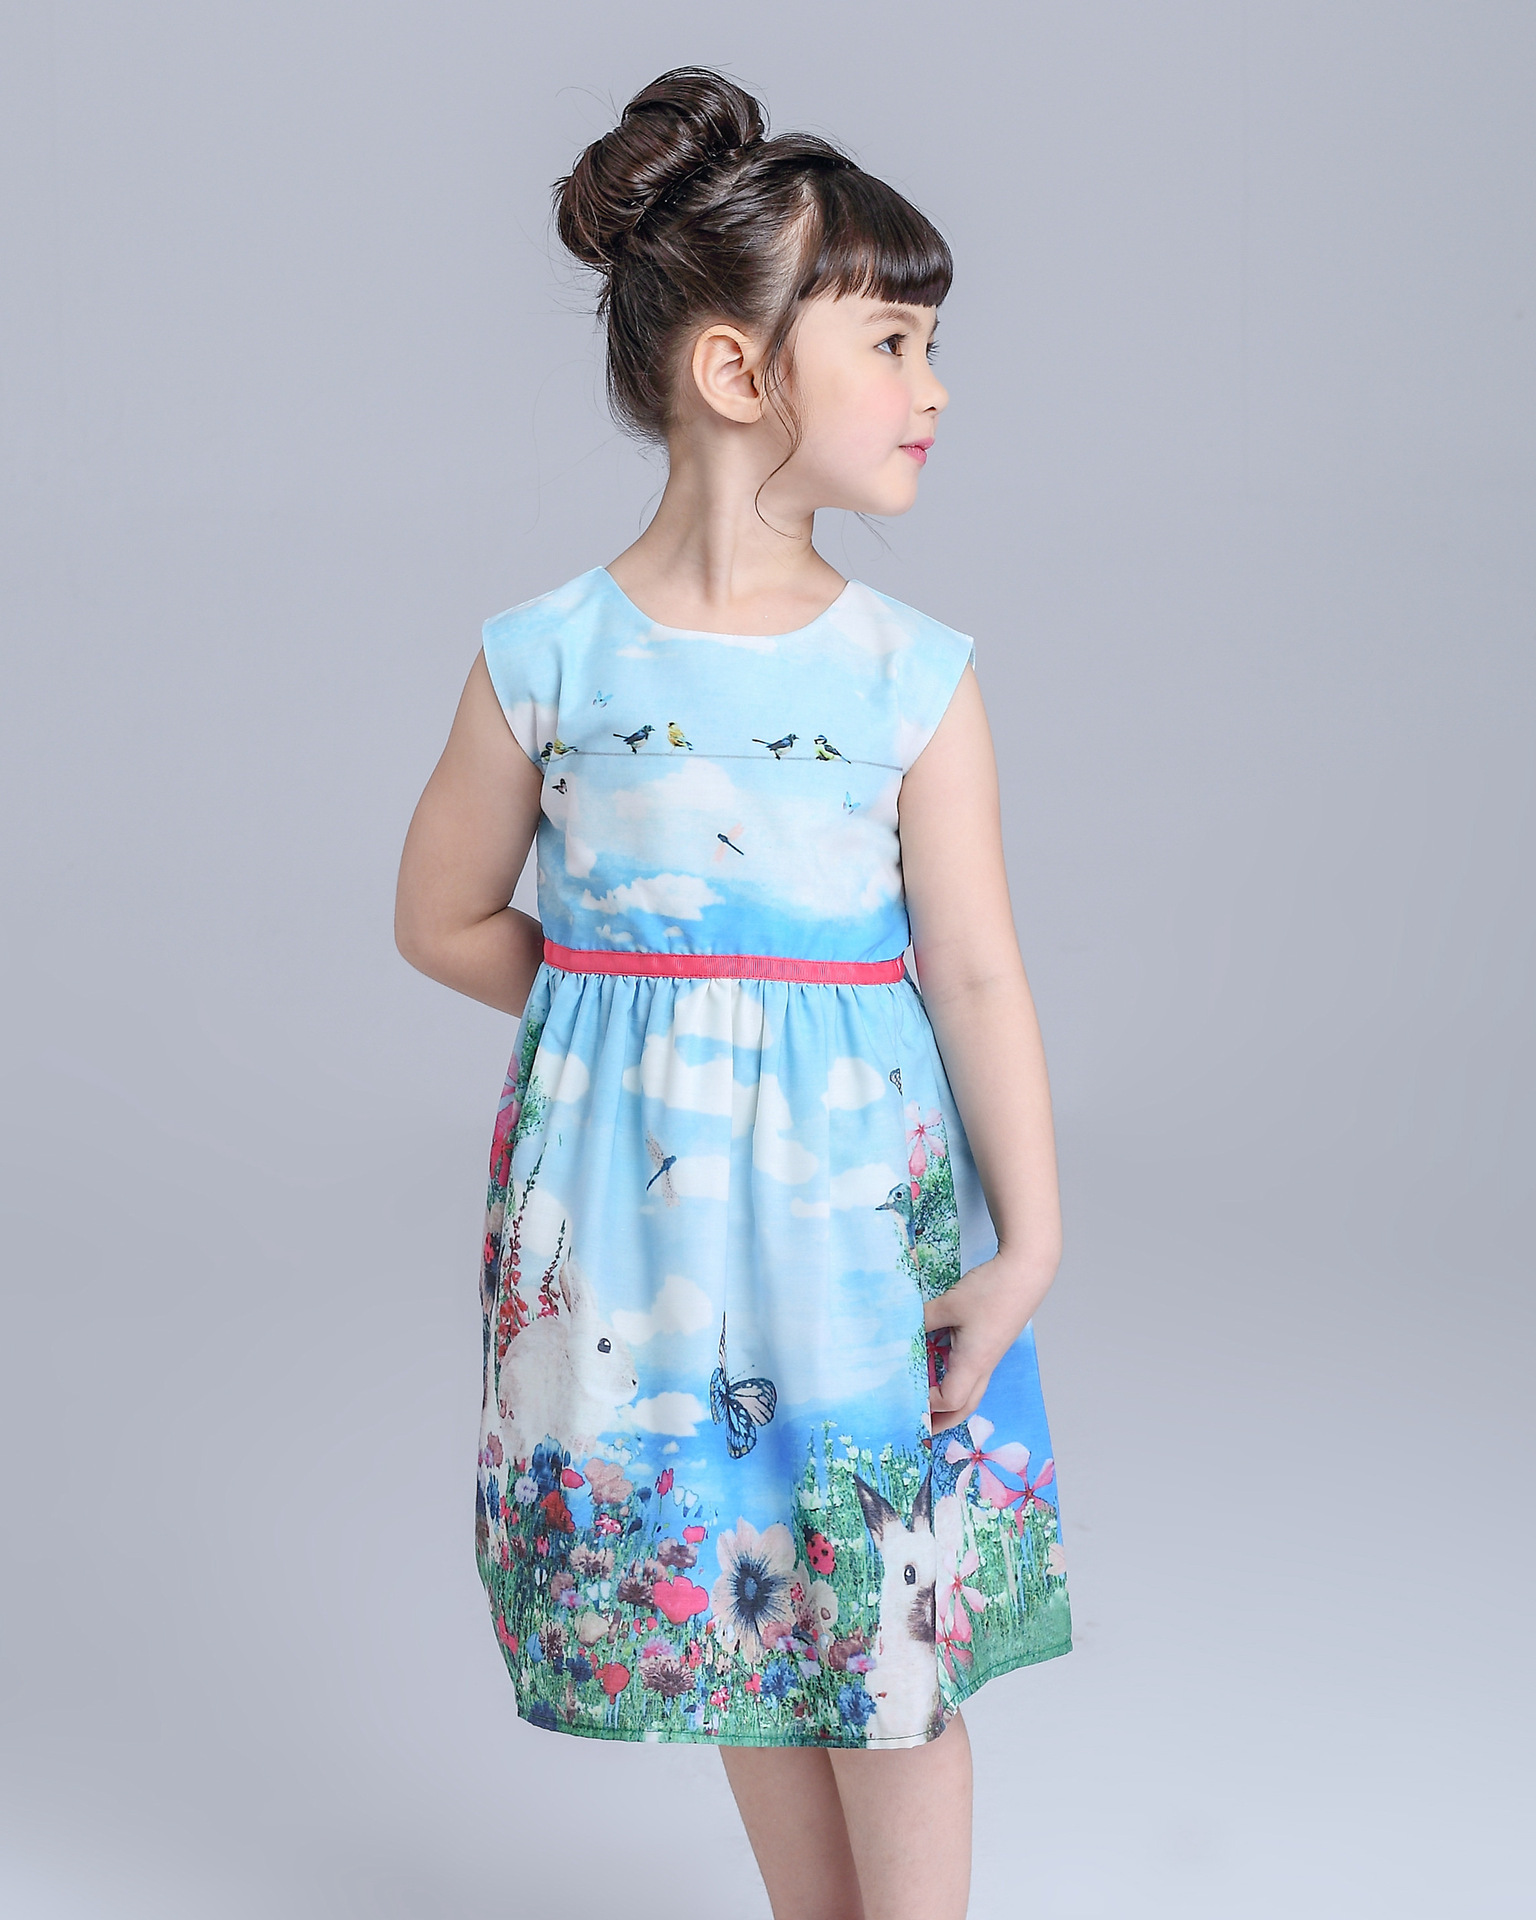 Baby Girl Clothes Kids Children Dresses Flowers Sweet Lovely Rabbit Cartoon Blue Princess Dresses Sleeveless Summer ватрушки sweet baby тюбинг sweet baby glider 105 silver blue